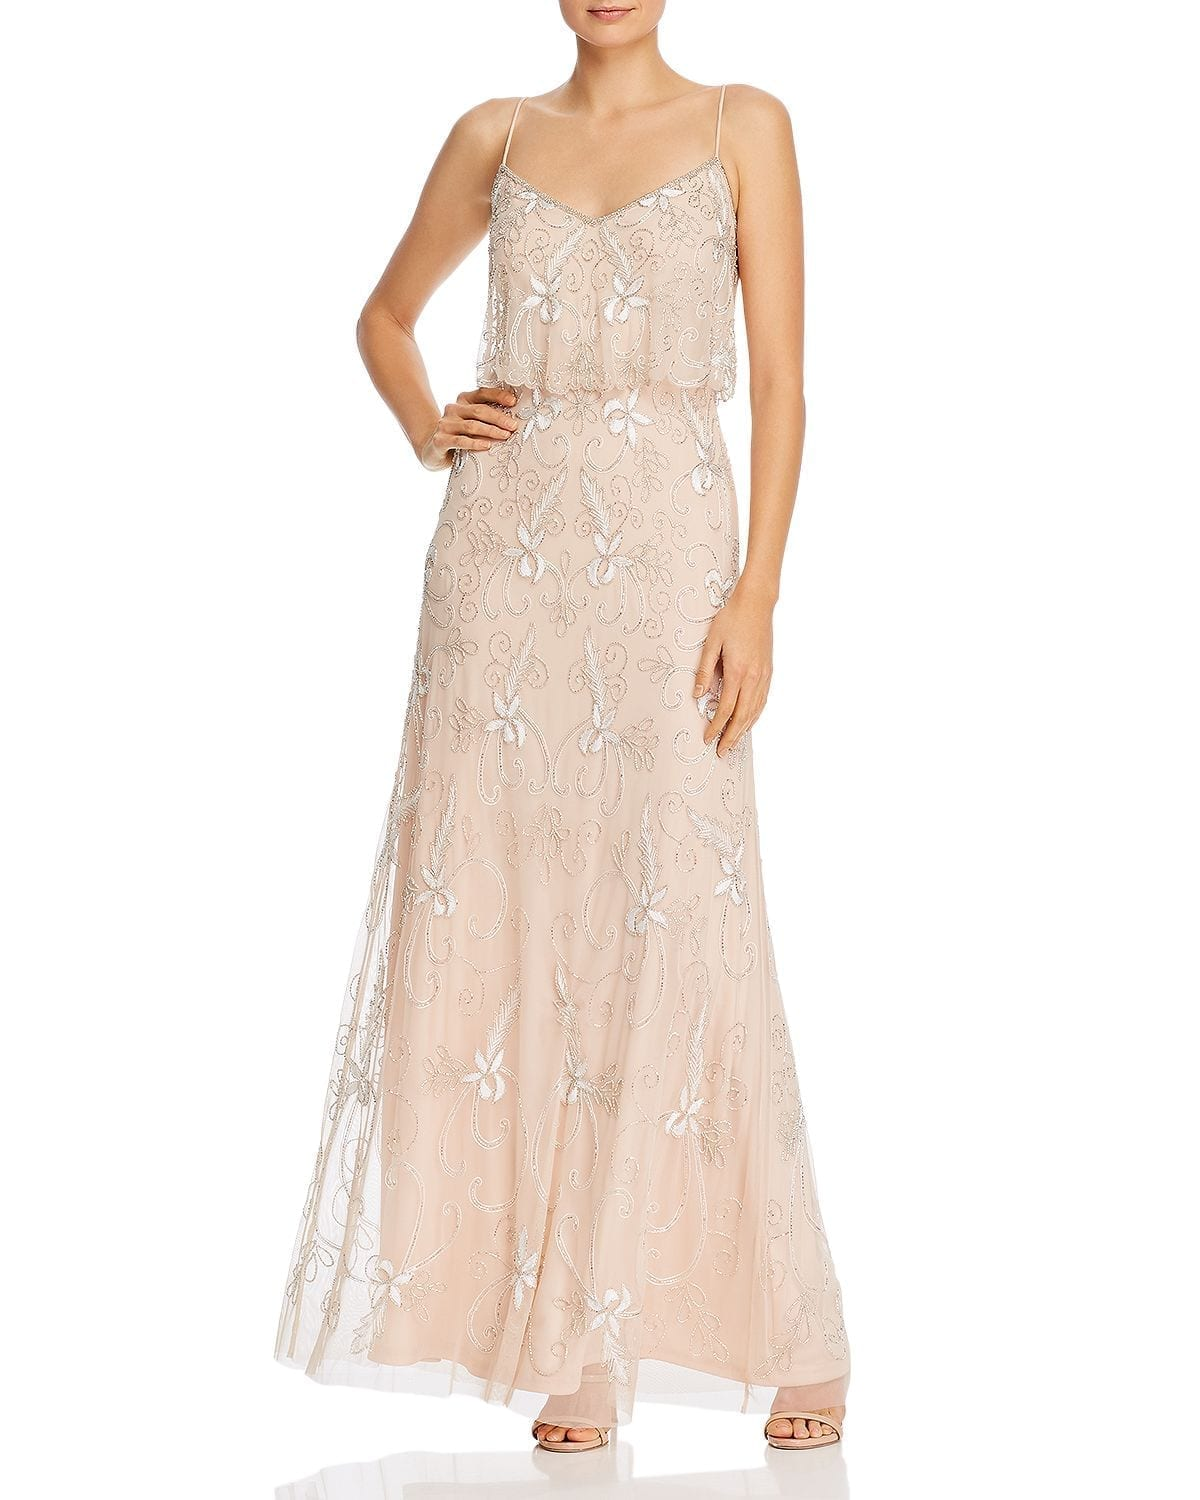 ADRIANNA PAPELL Beaded Popover Gown